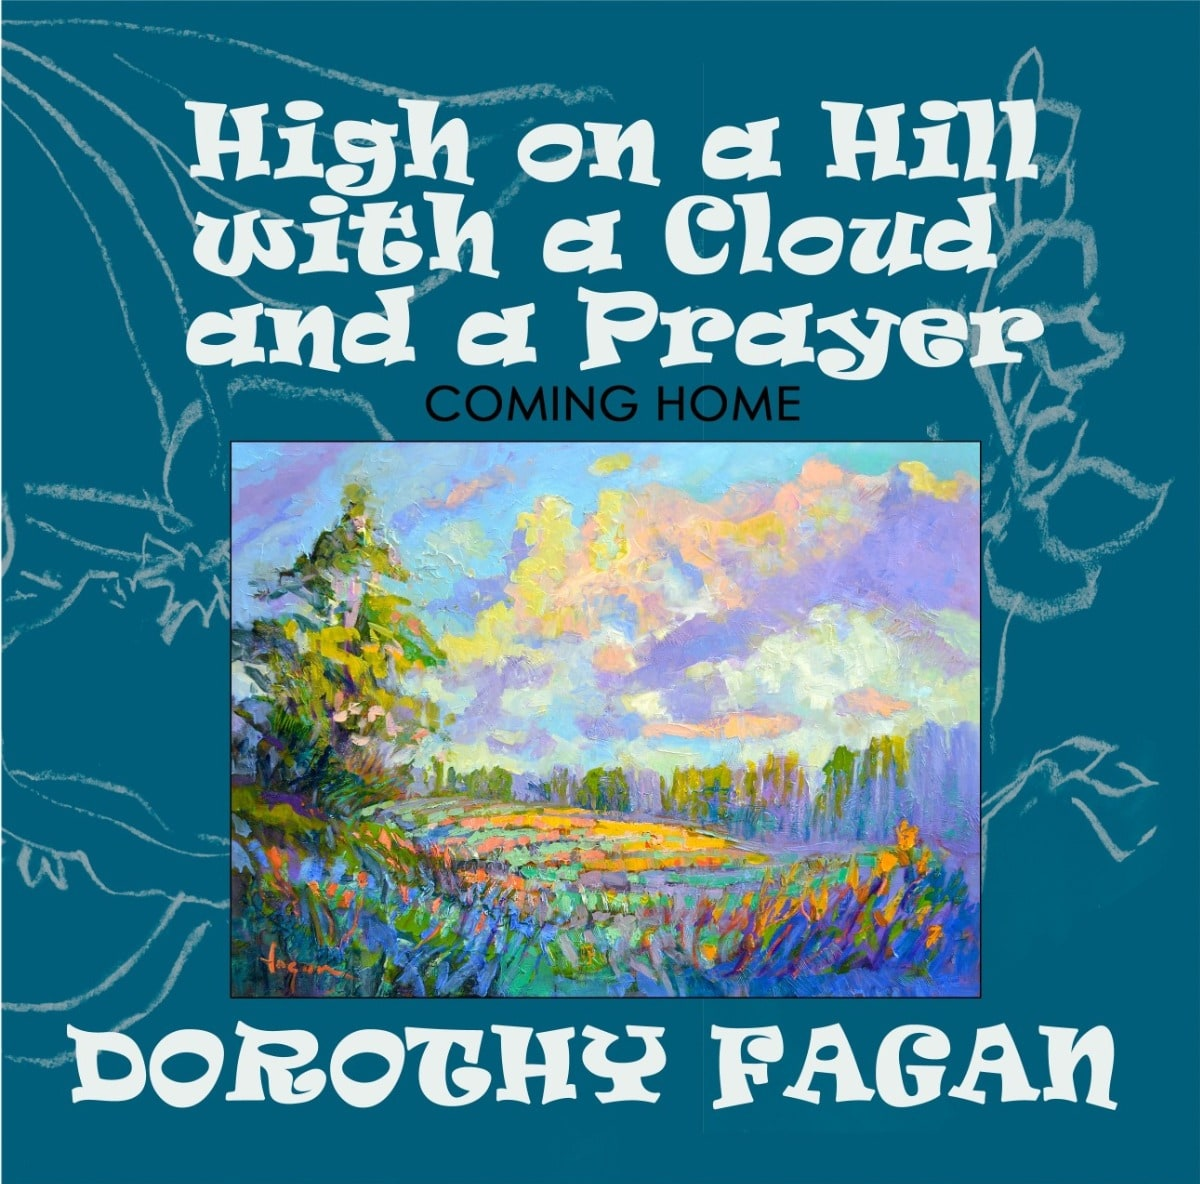 High on a Hill with a Cloud and a Prayer